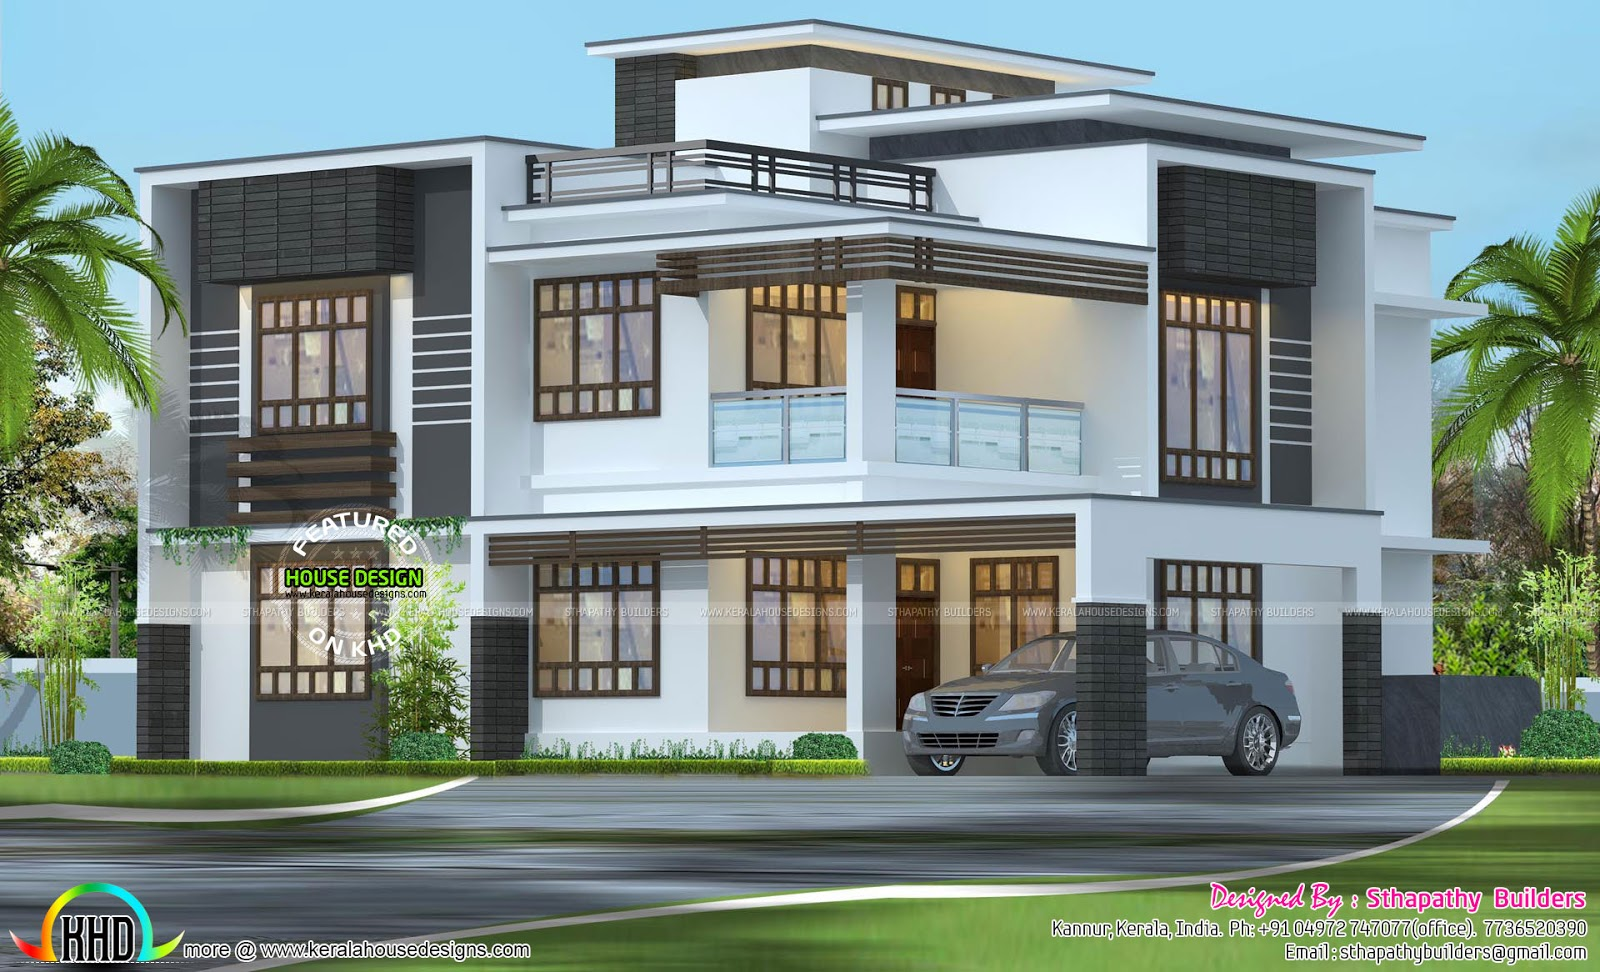 See floor plans read more please follow kerala home design - Design Style Flat Roof See Floor Plans And Facilities Of This House Read More Please Follow Kerala Home Design